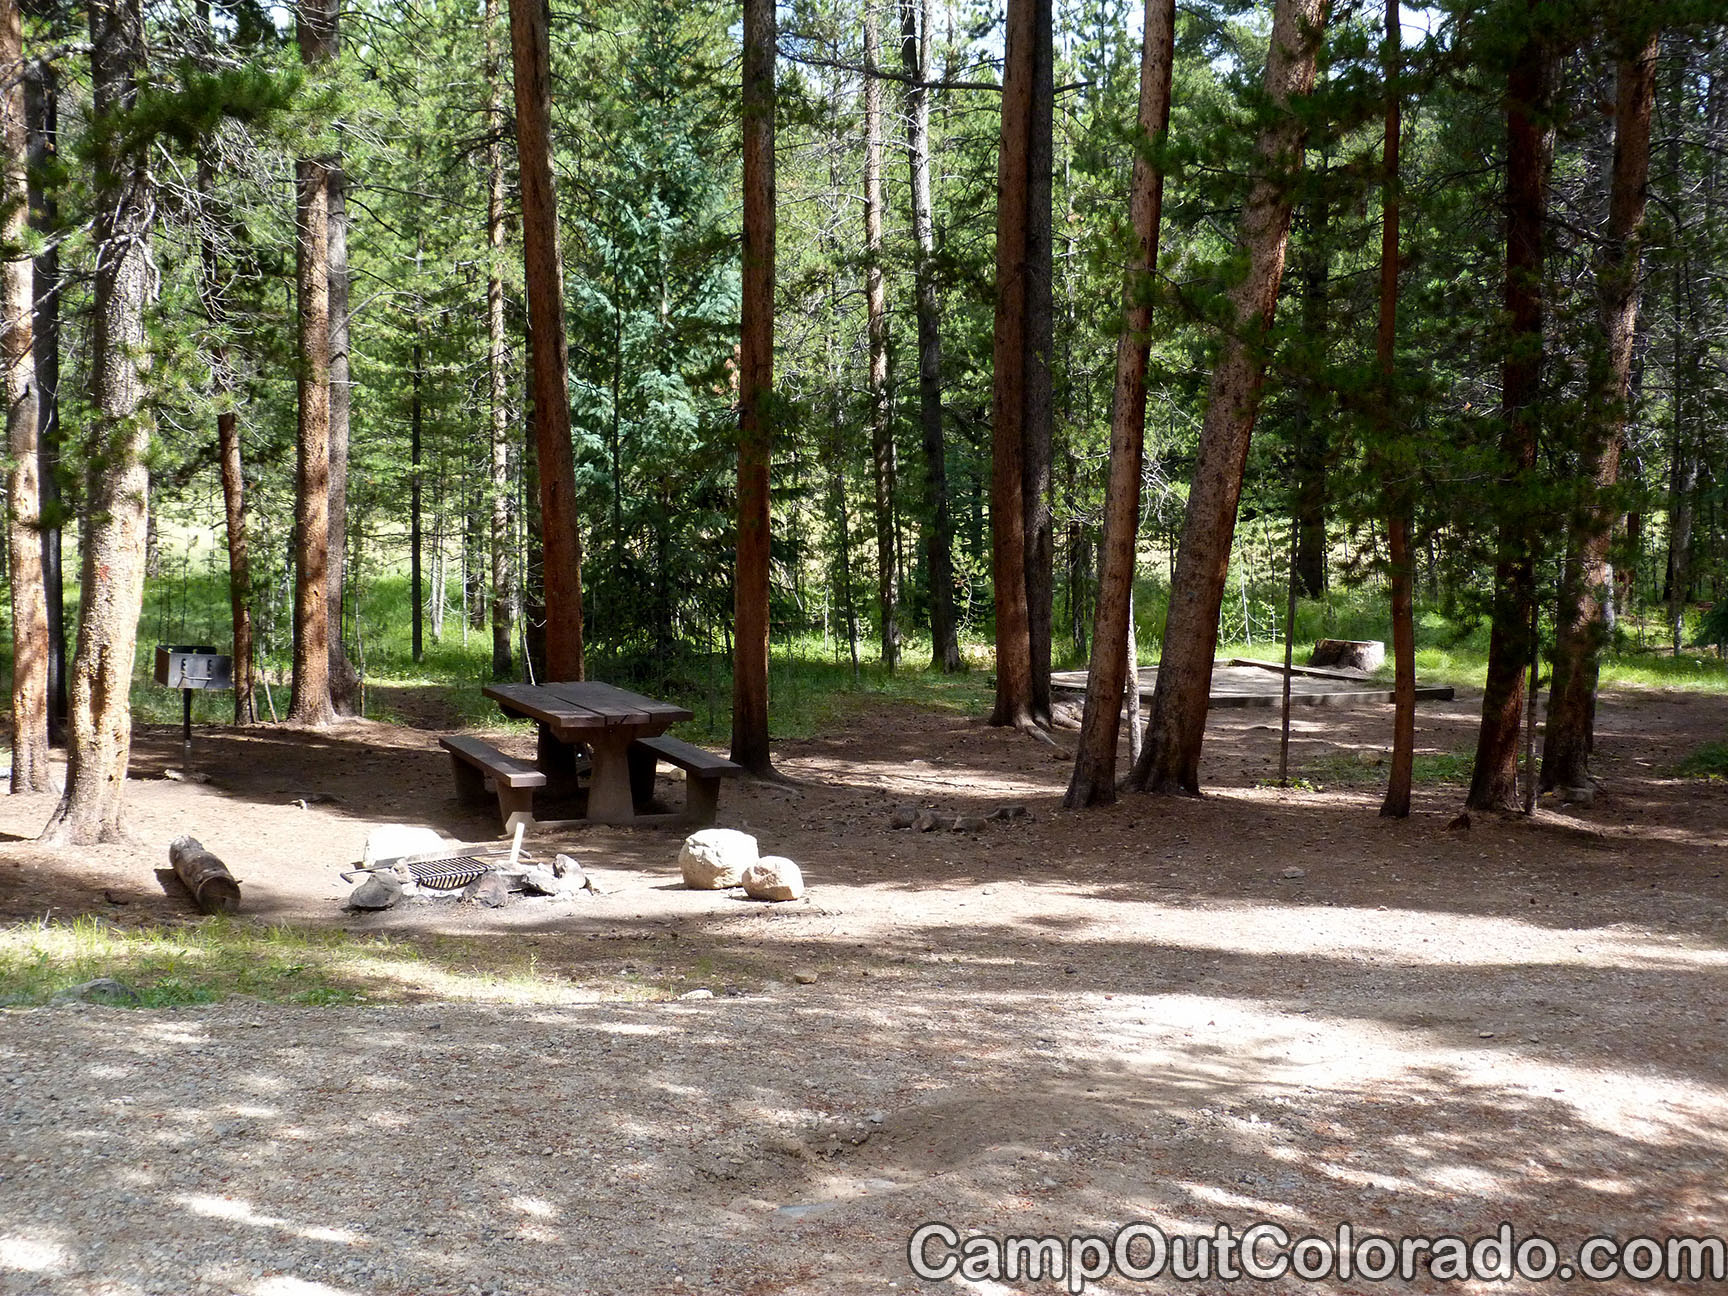 Camp-out-colorado-silver-dollar-turquoise-many-trees